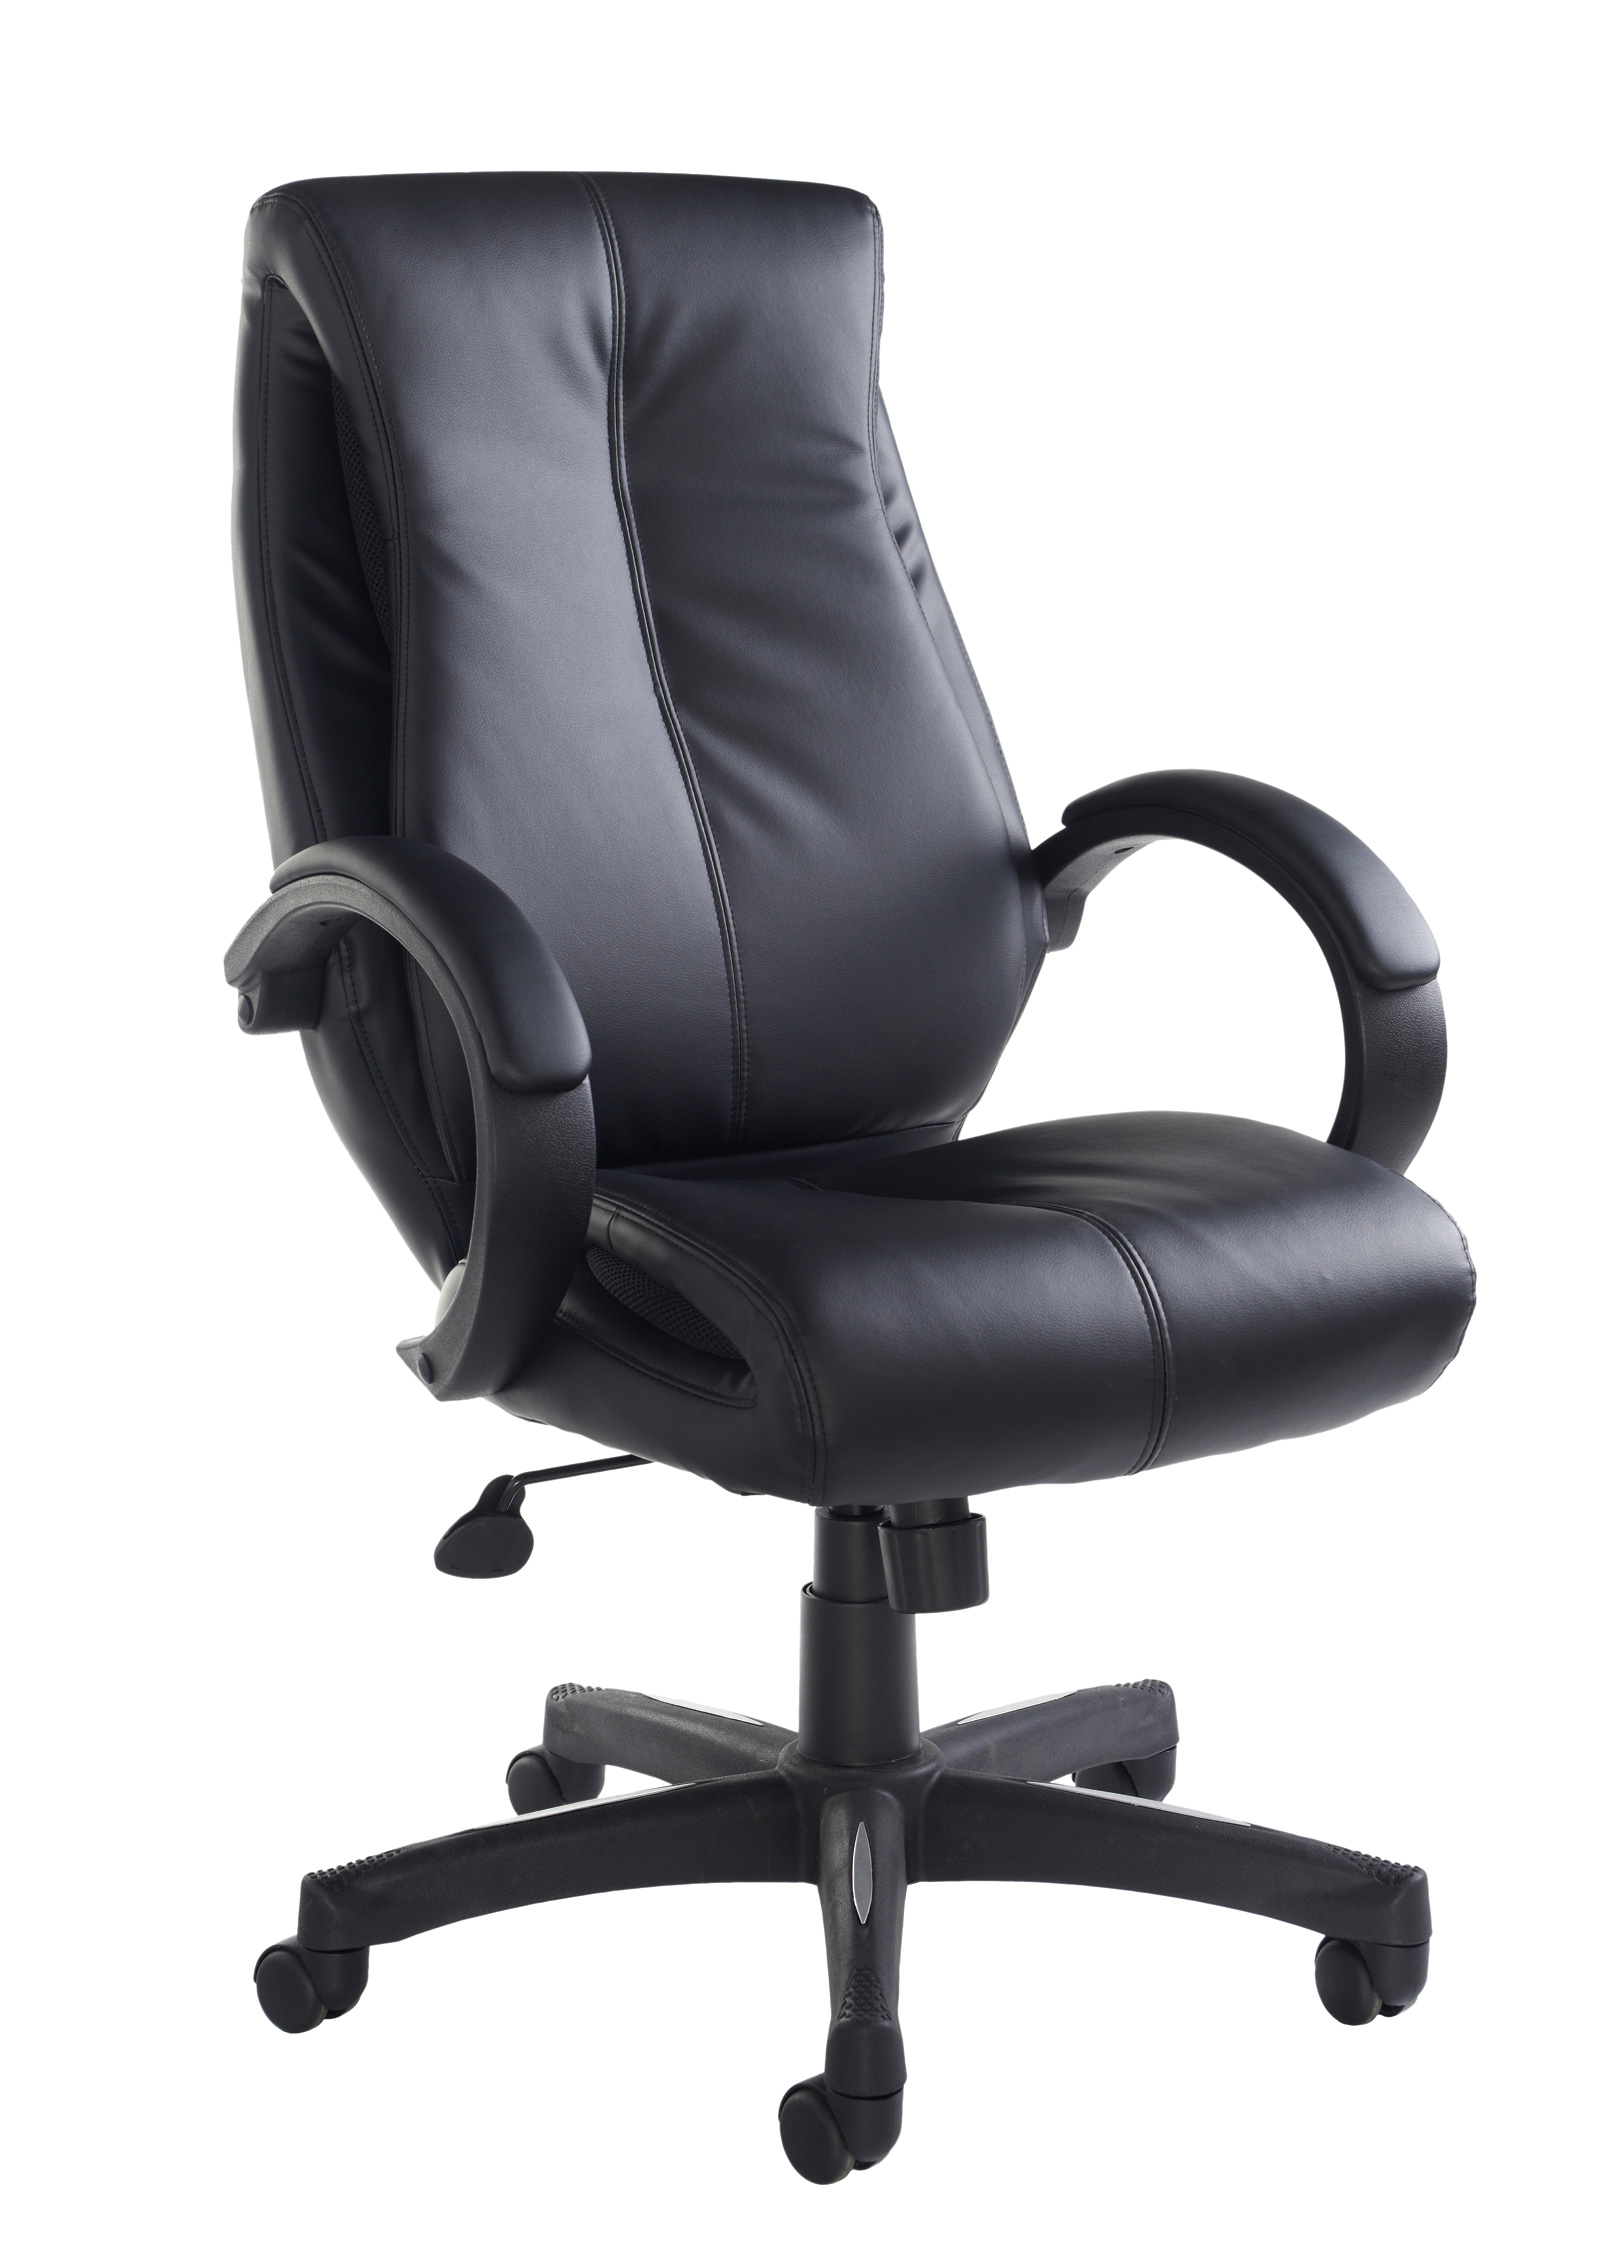 Nantes high back managers chair